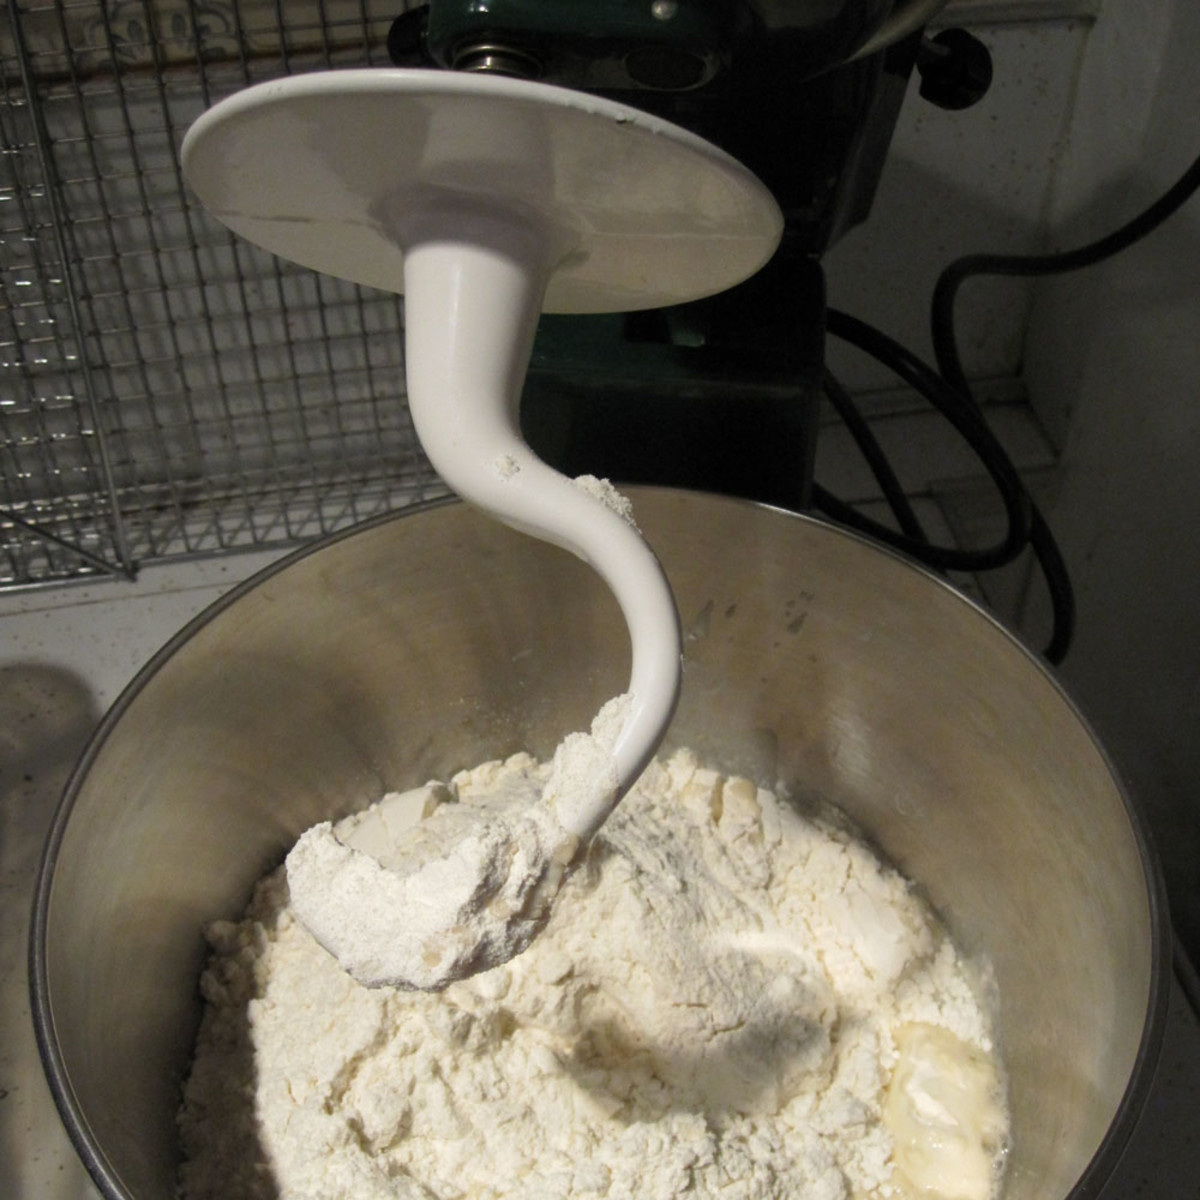 KitchenAid mixer with dough hook and bowl inserted.